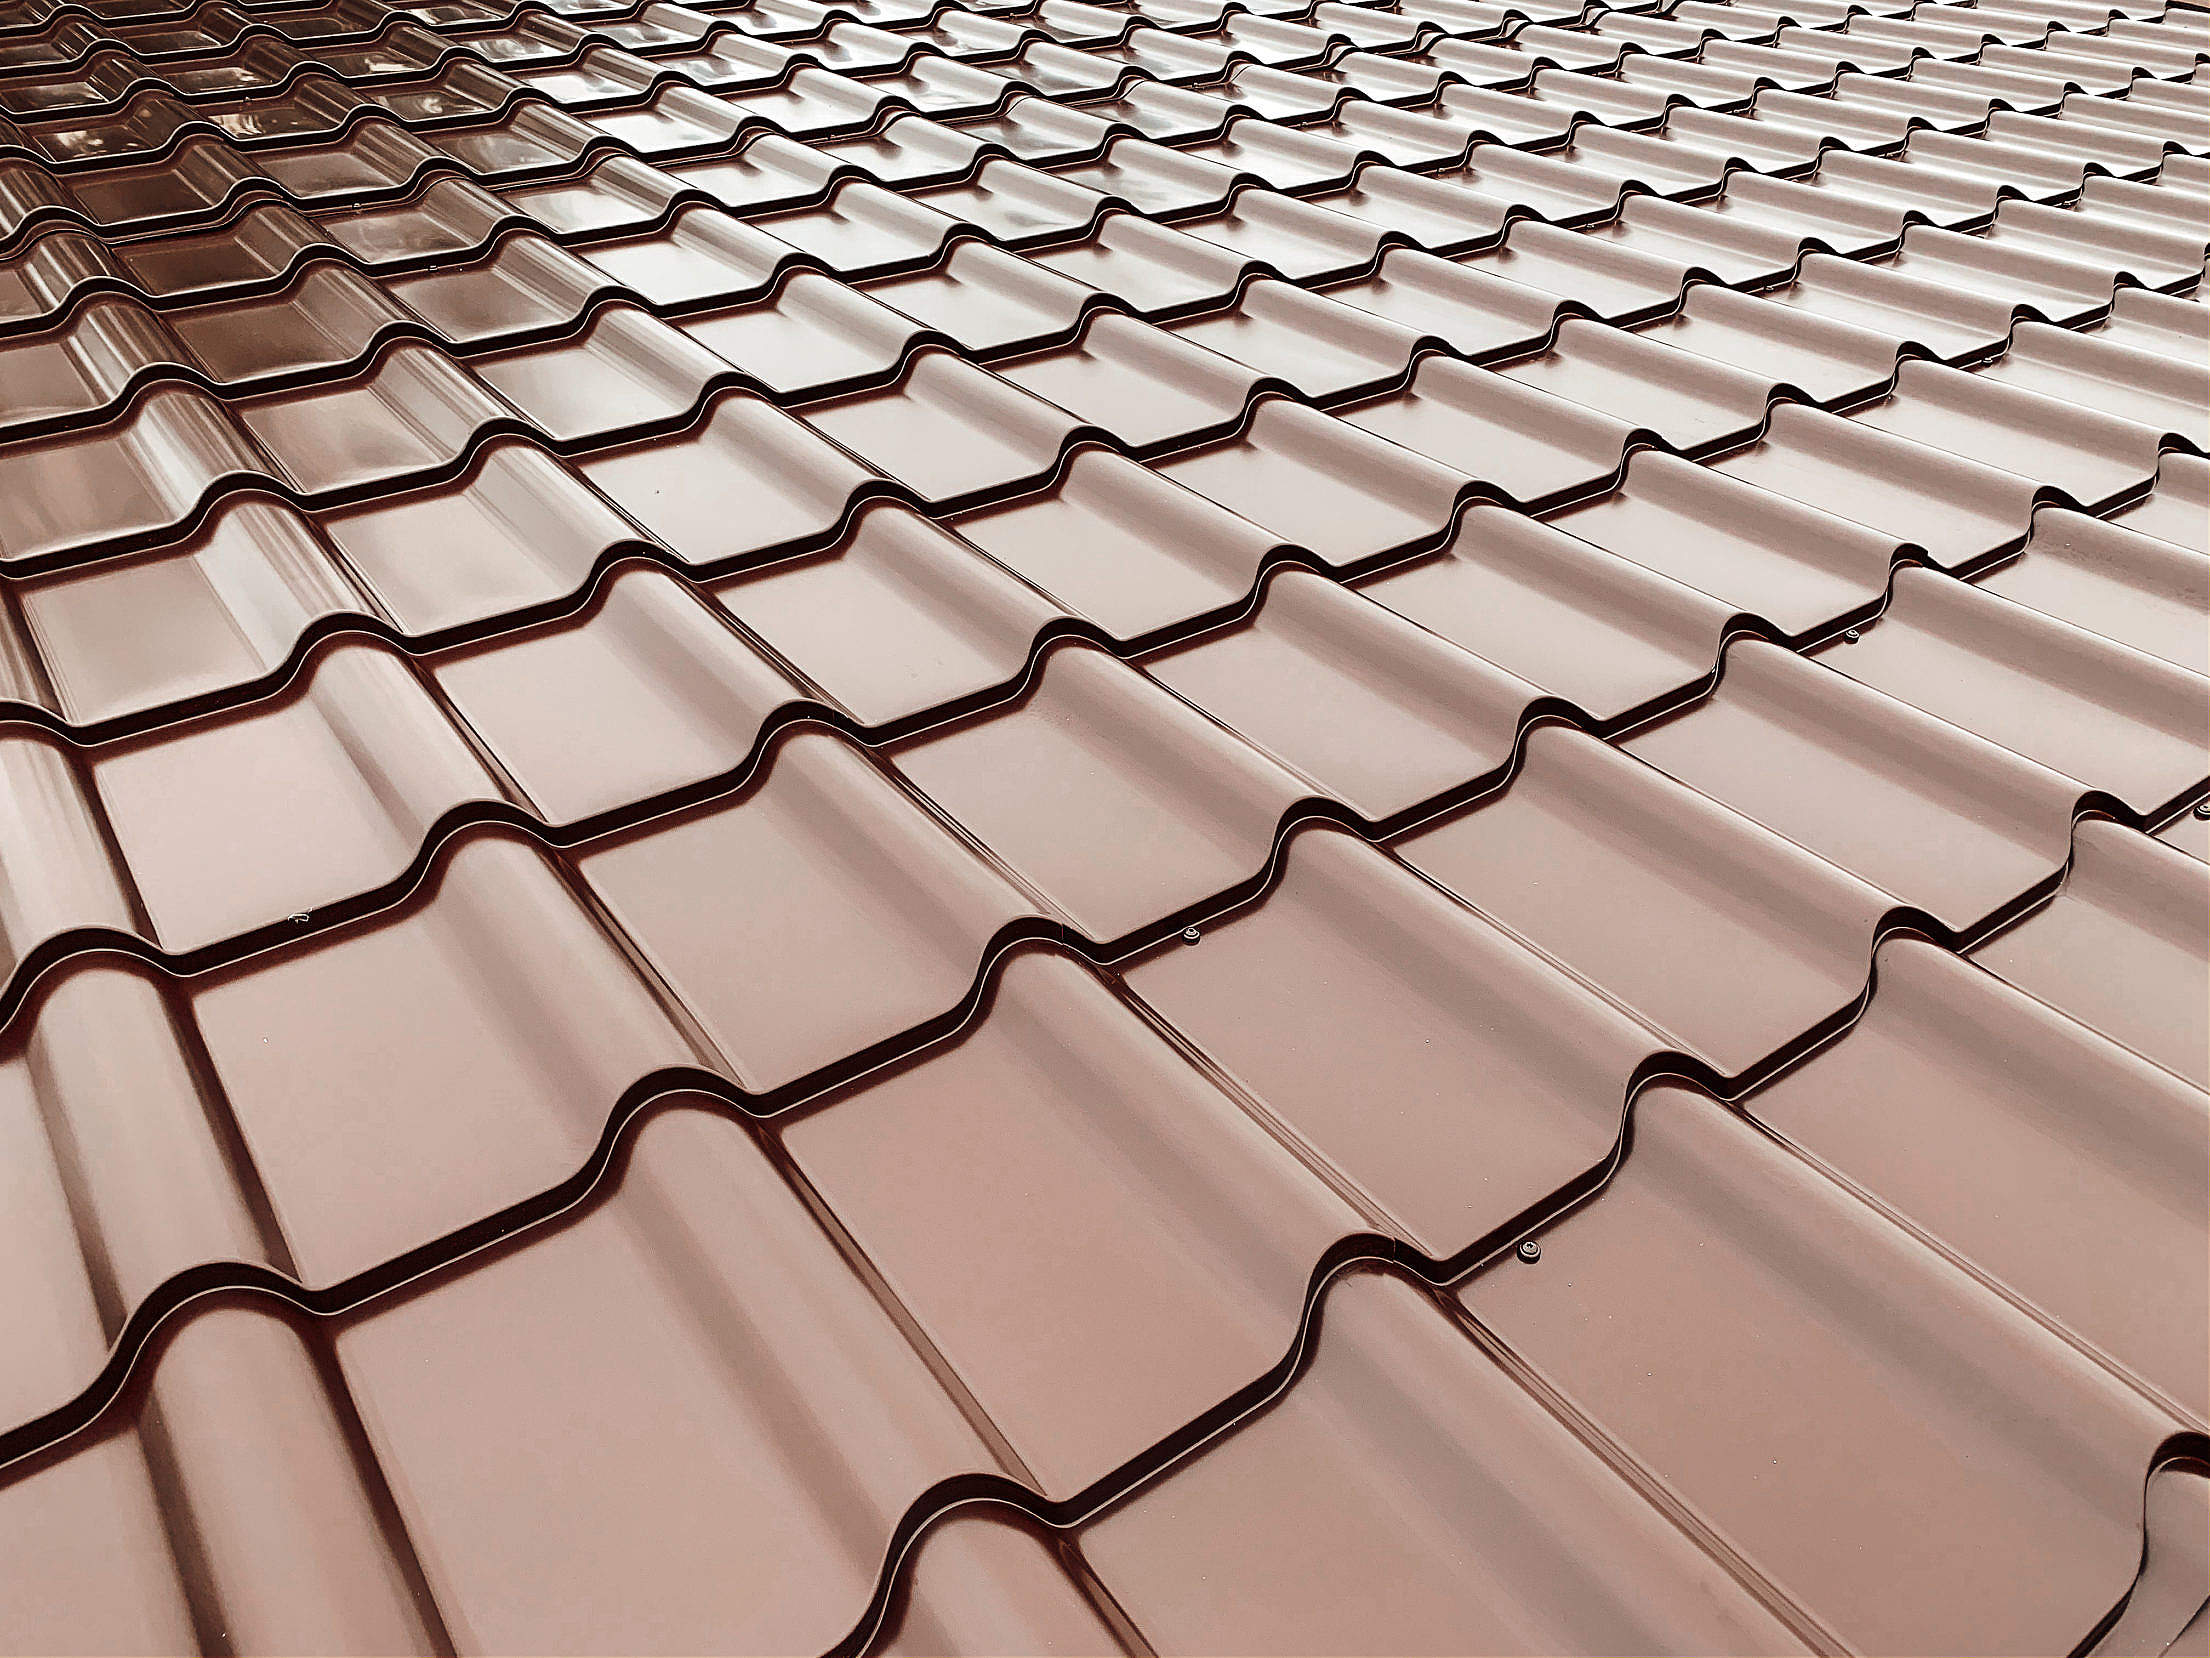 Roof Tiles Close Up Free Stock Photo